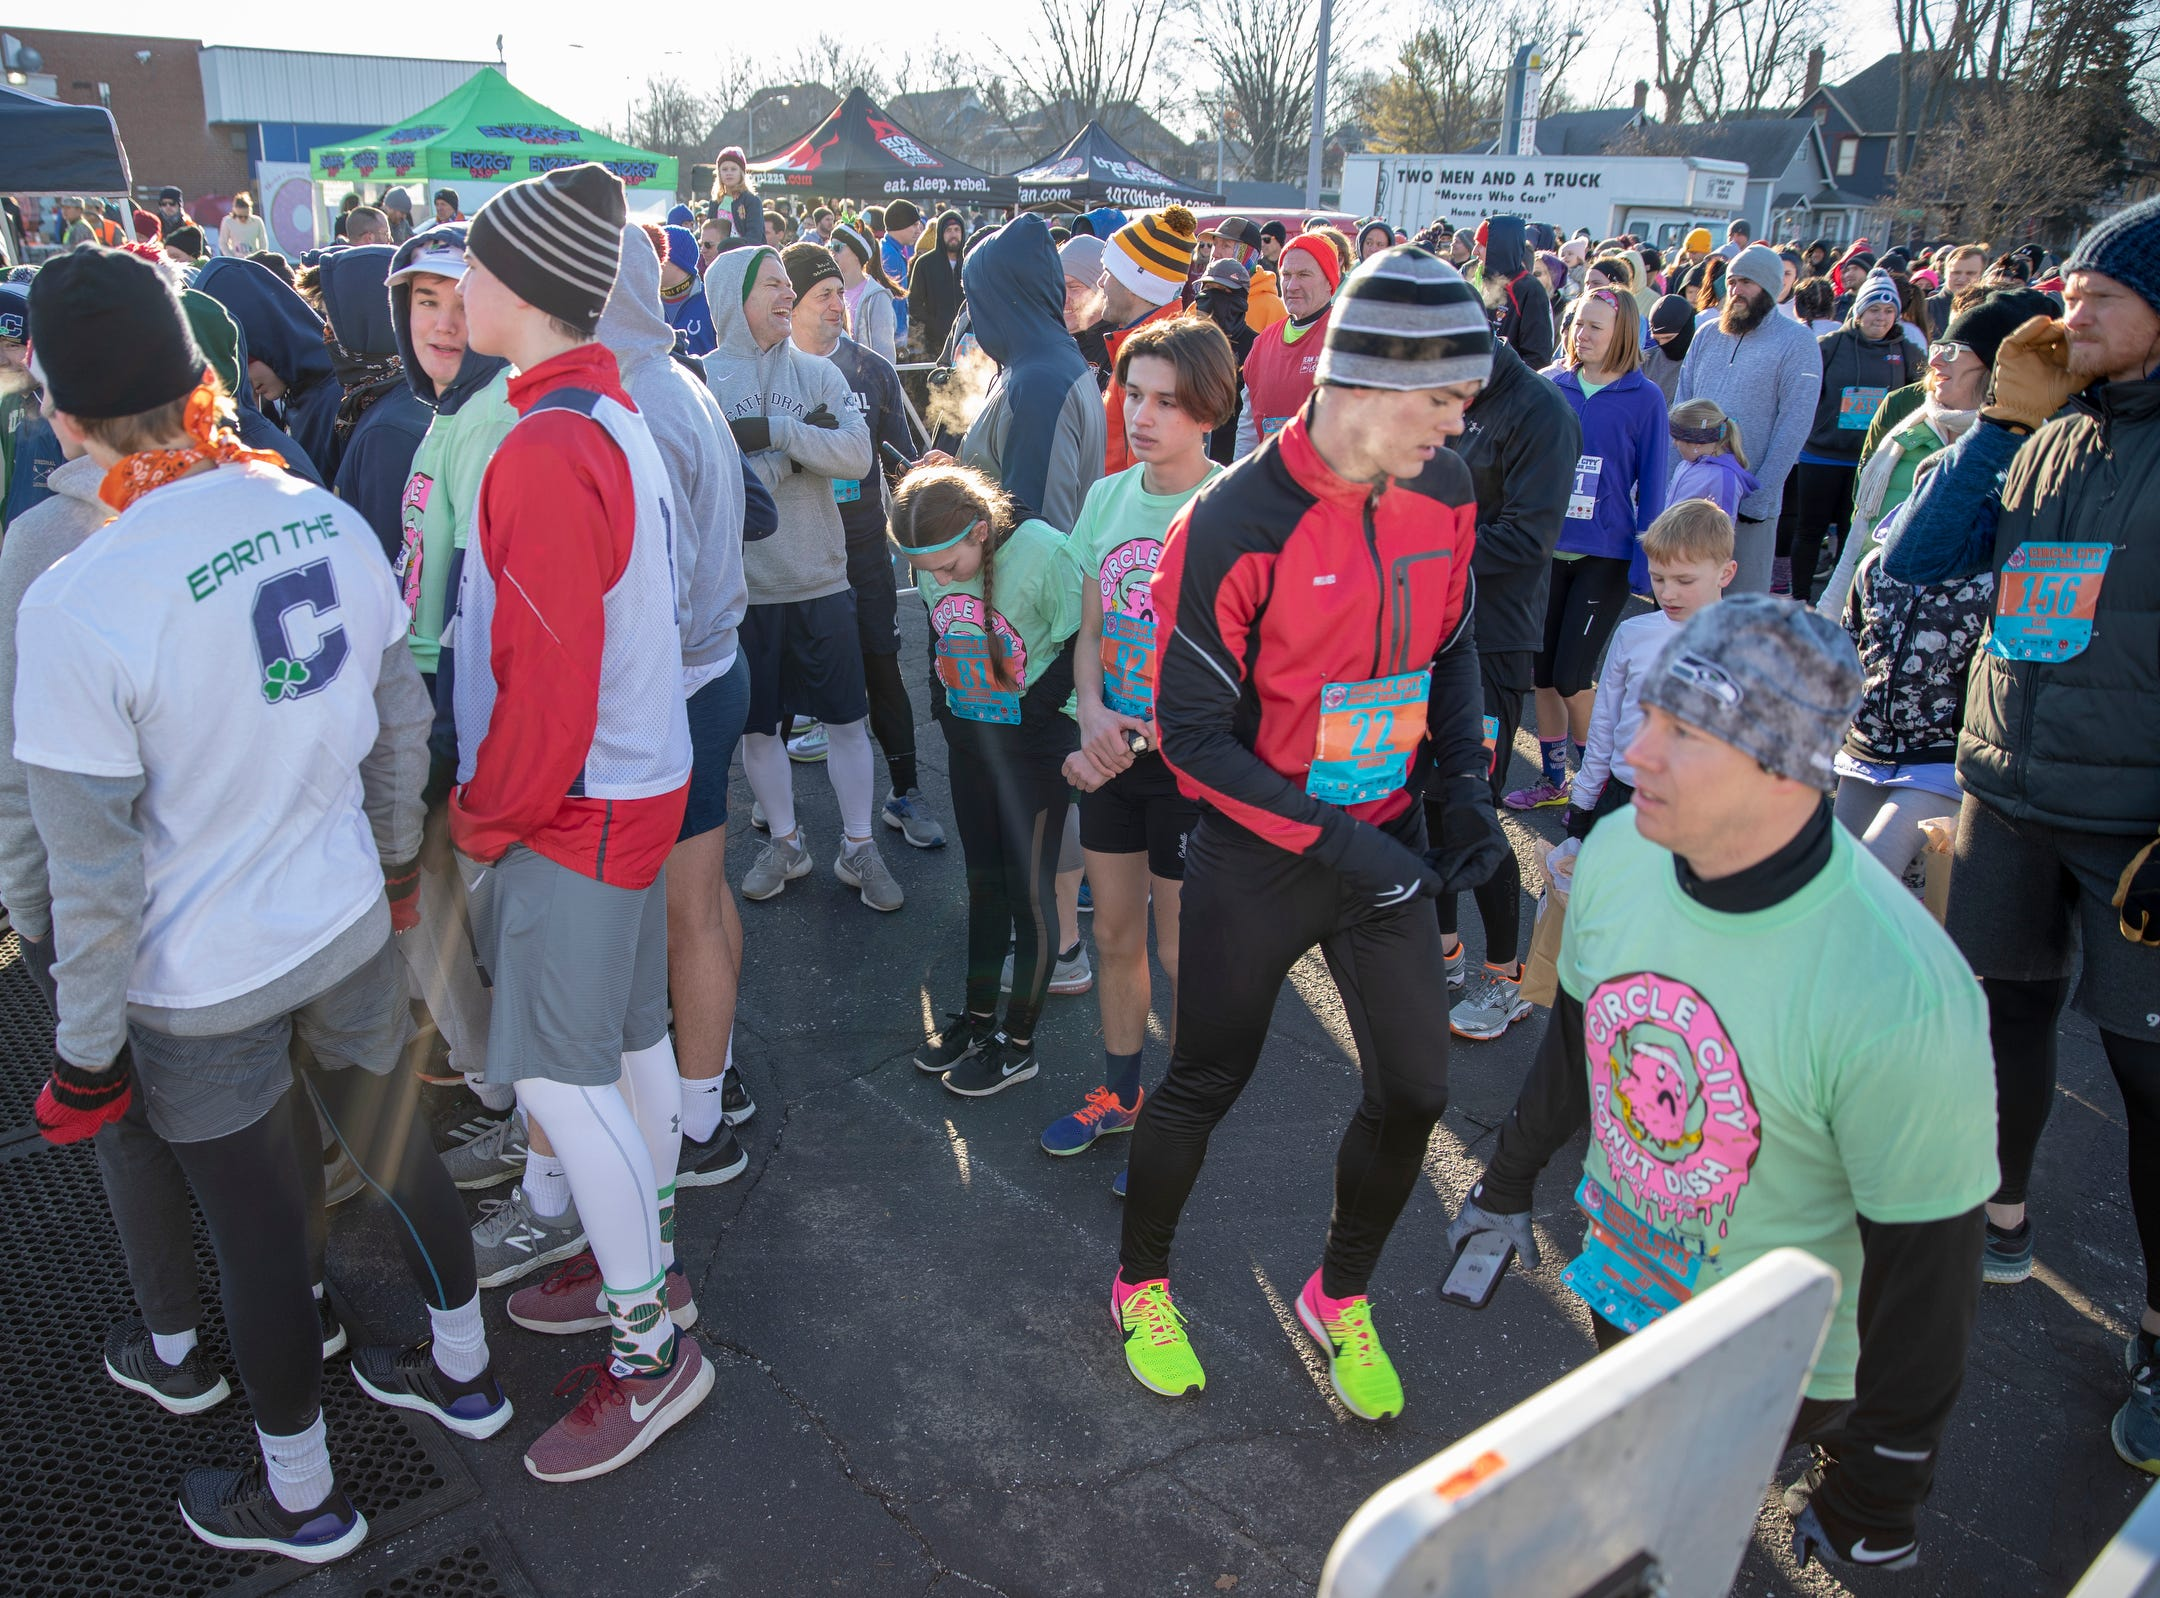 The staring area of the Circle City Donut Dash 5k, a five kilometer race that benefits Teachers' Treasures, Indianapolis, Saturday, Feb. 16, 2019. The race invites willing runners to eat a dozen doughnut holes at the halfway point in the event that helps provide school supplies for area school kids.